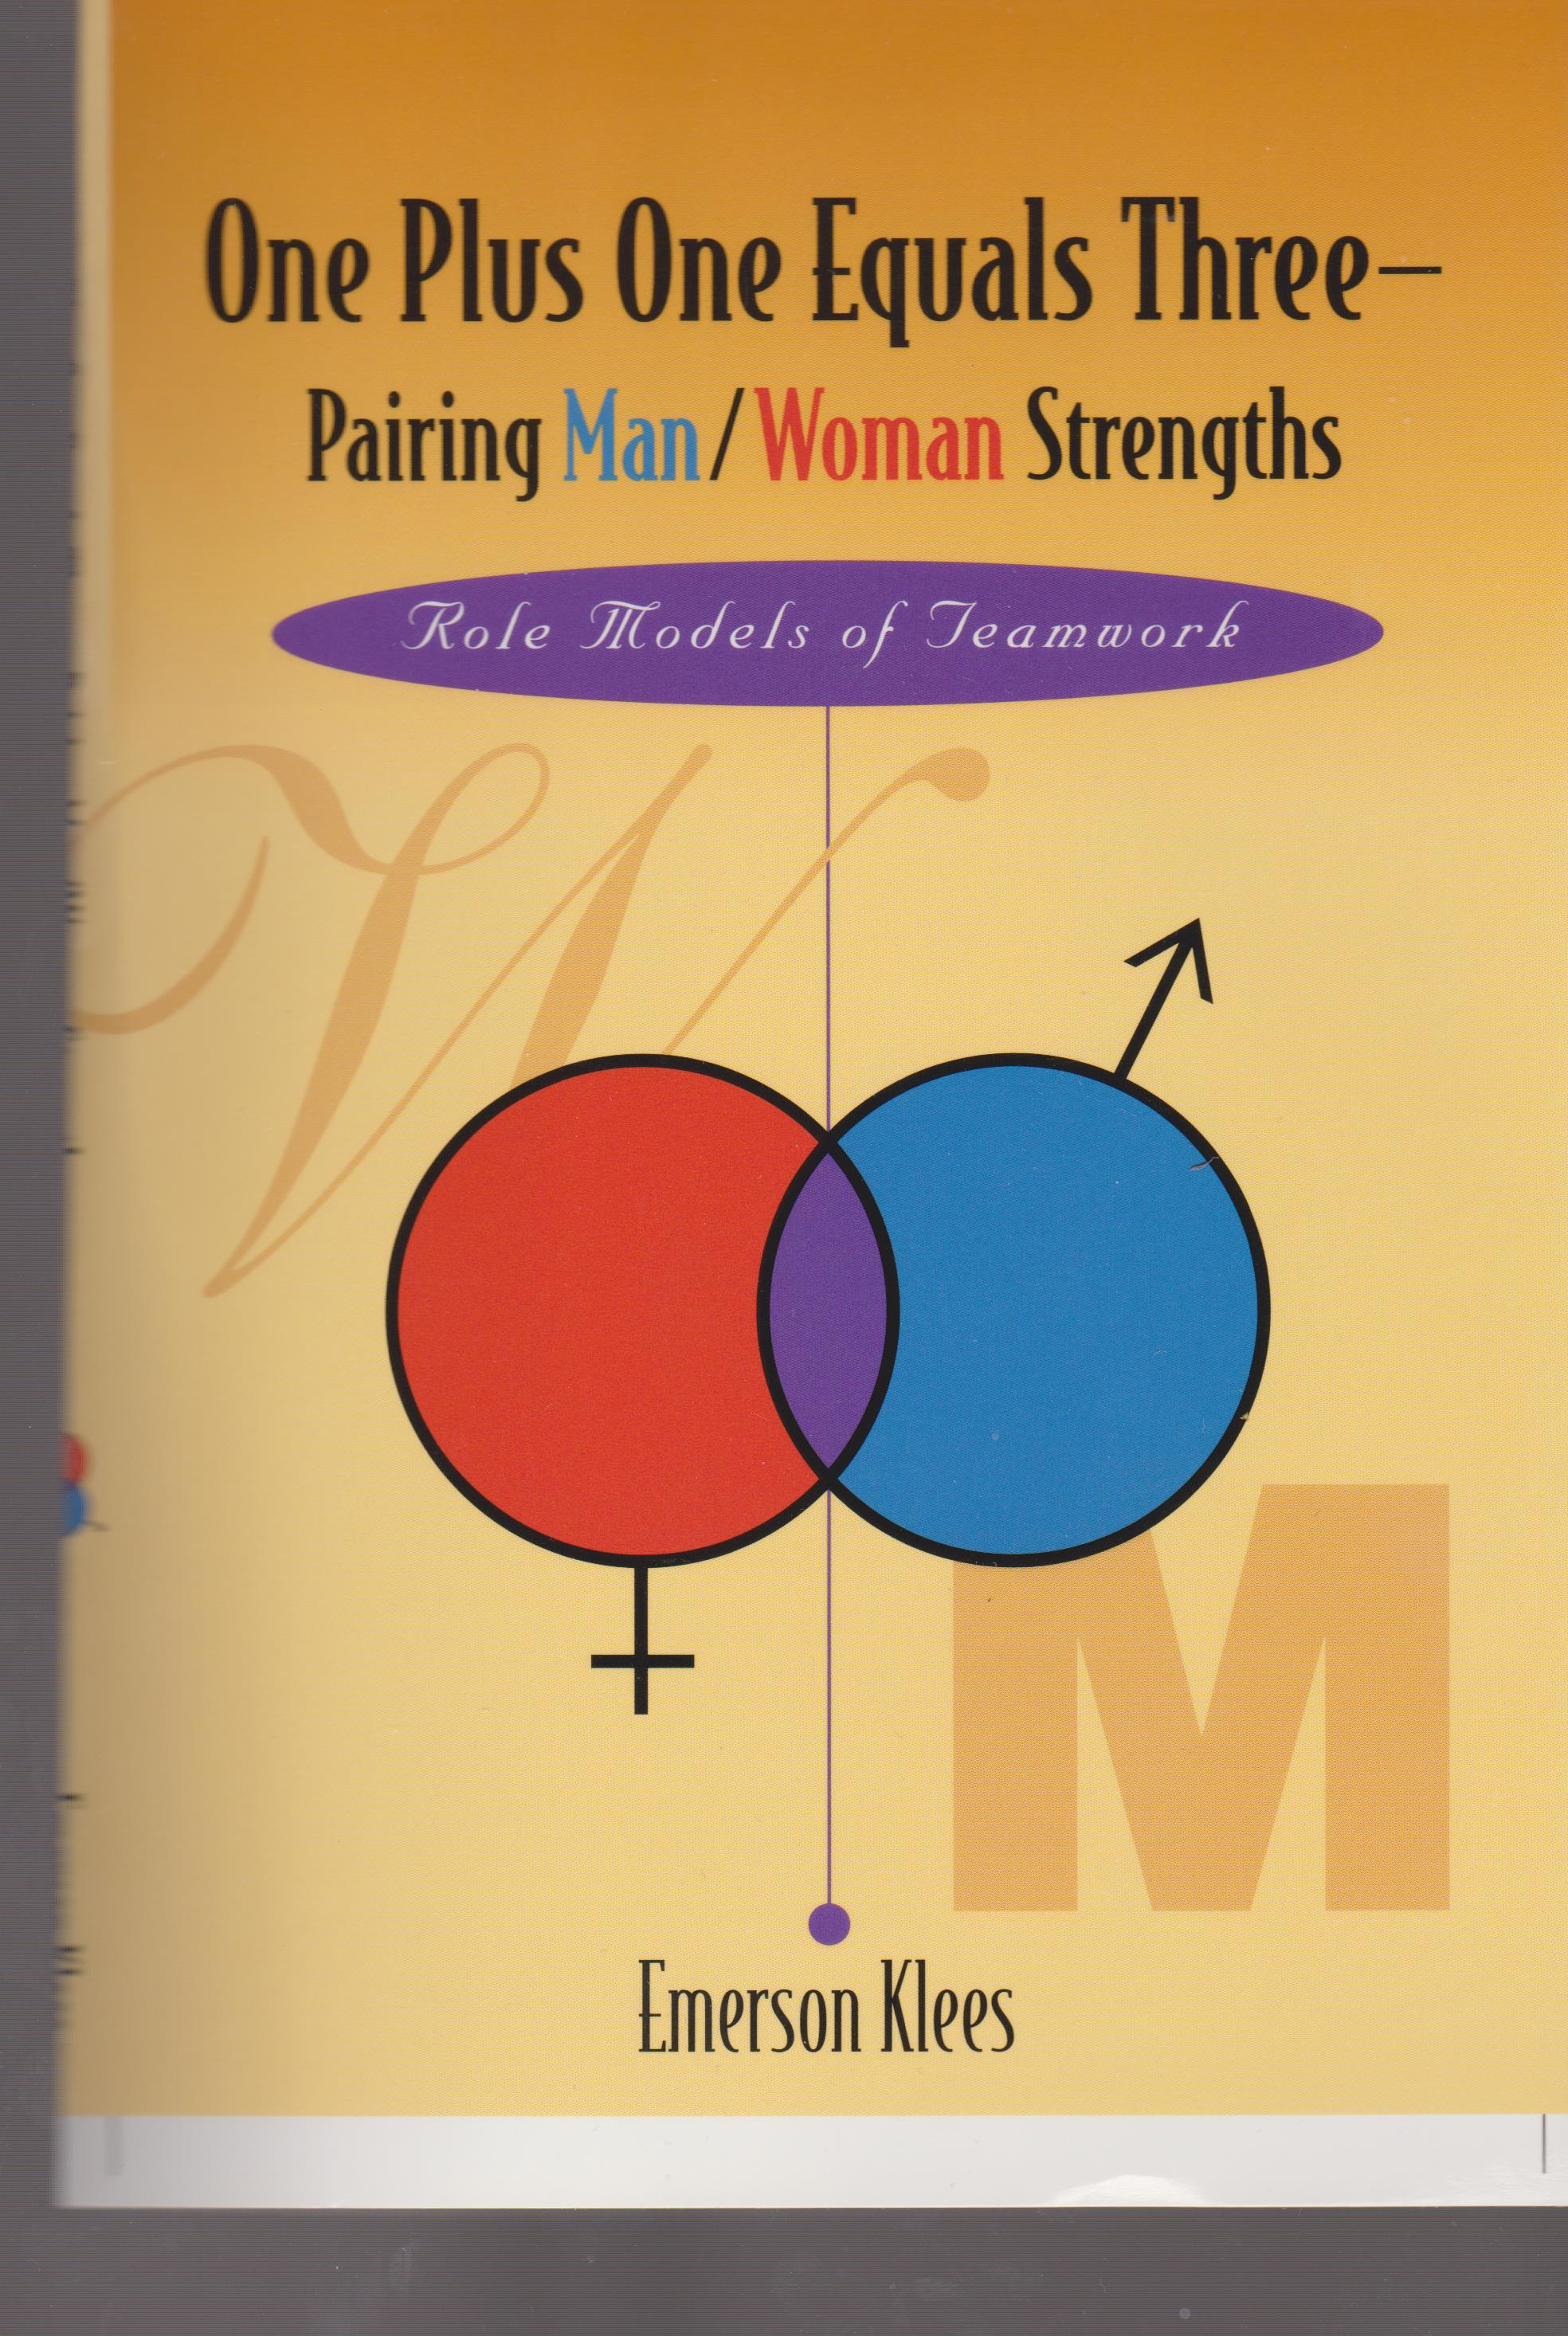 One Plus One Equals Three--Pairing Man / Woman Strengths